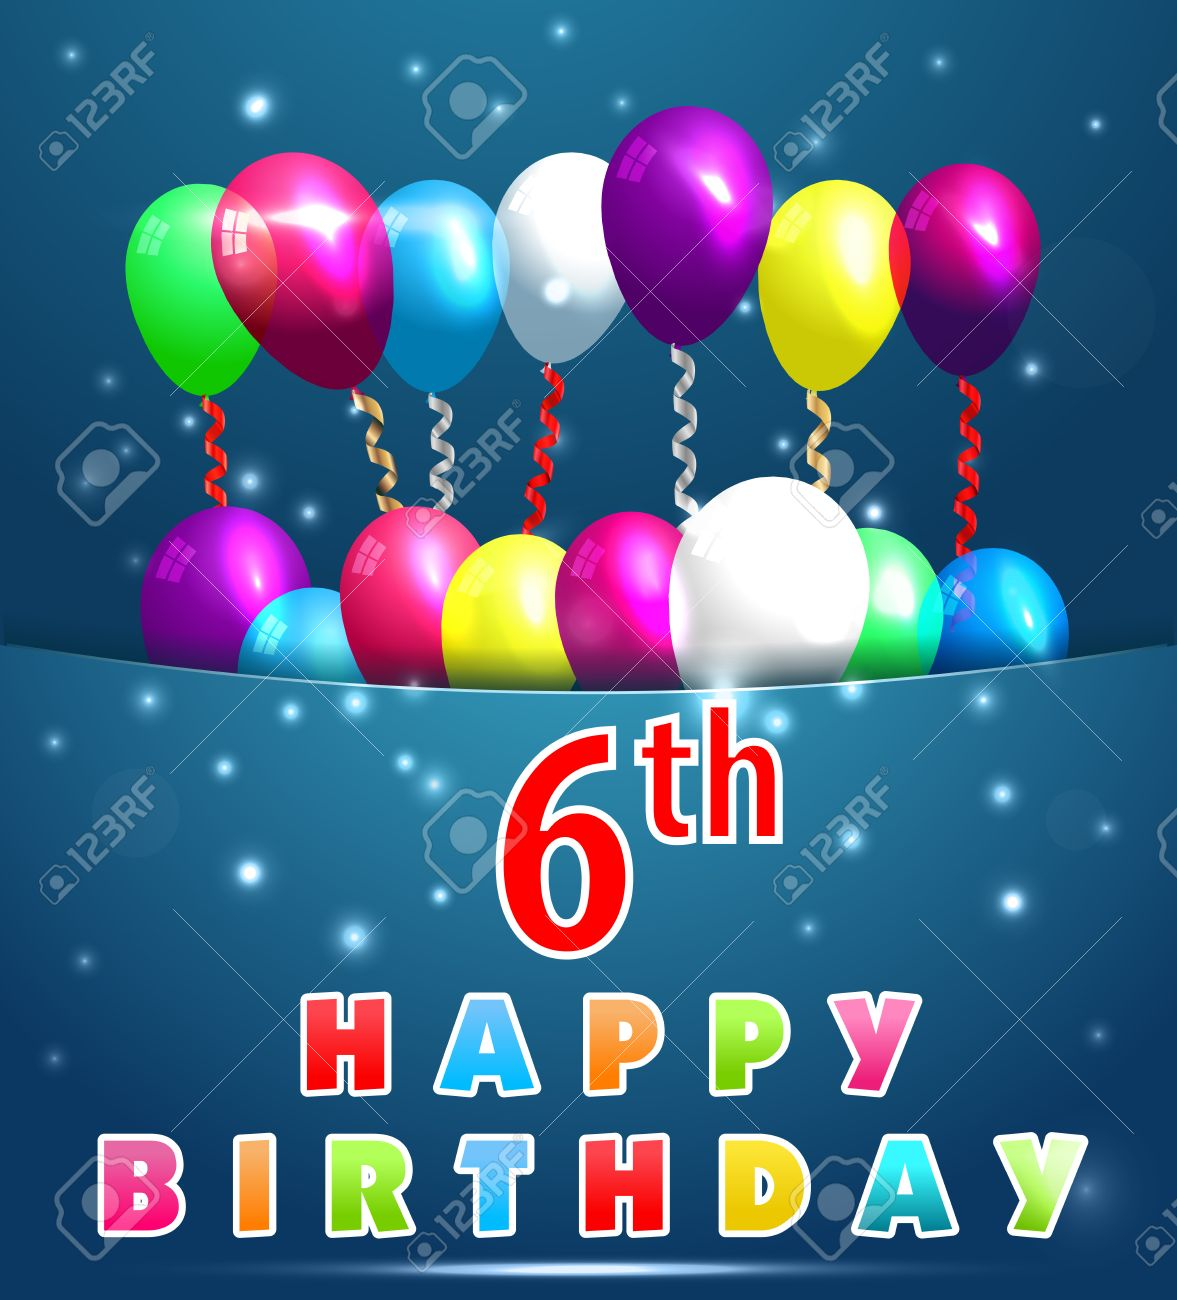 6 Year Happy Birthday Card With Balloons And Ribbons 6th Stock Vector